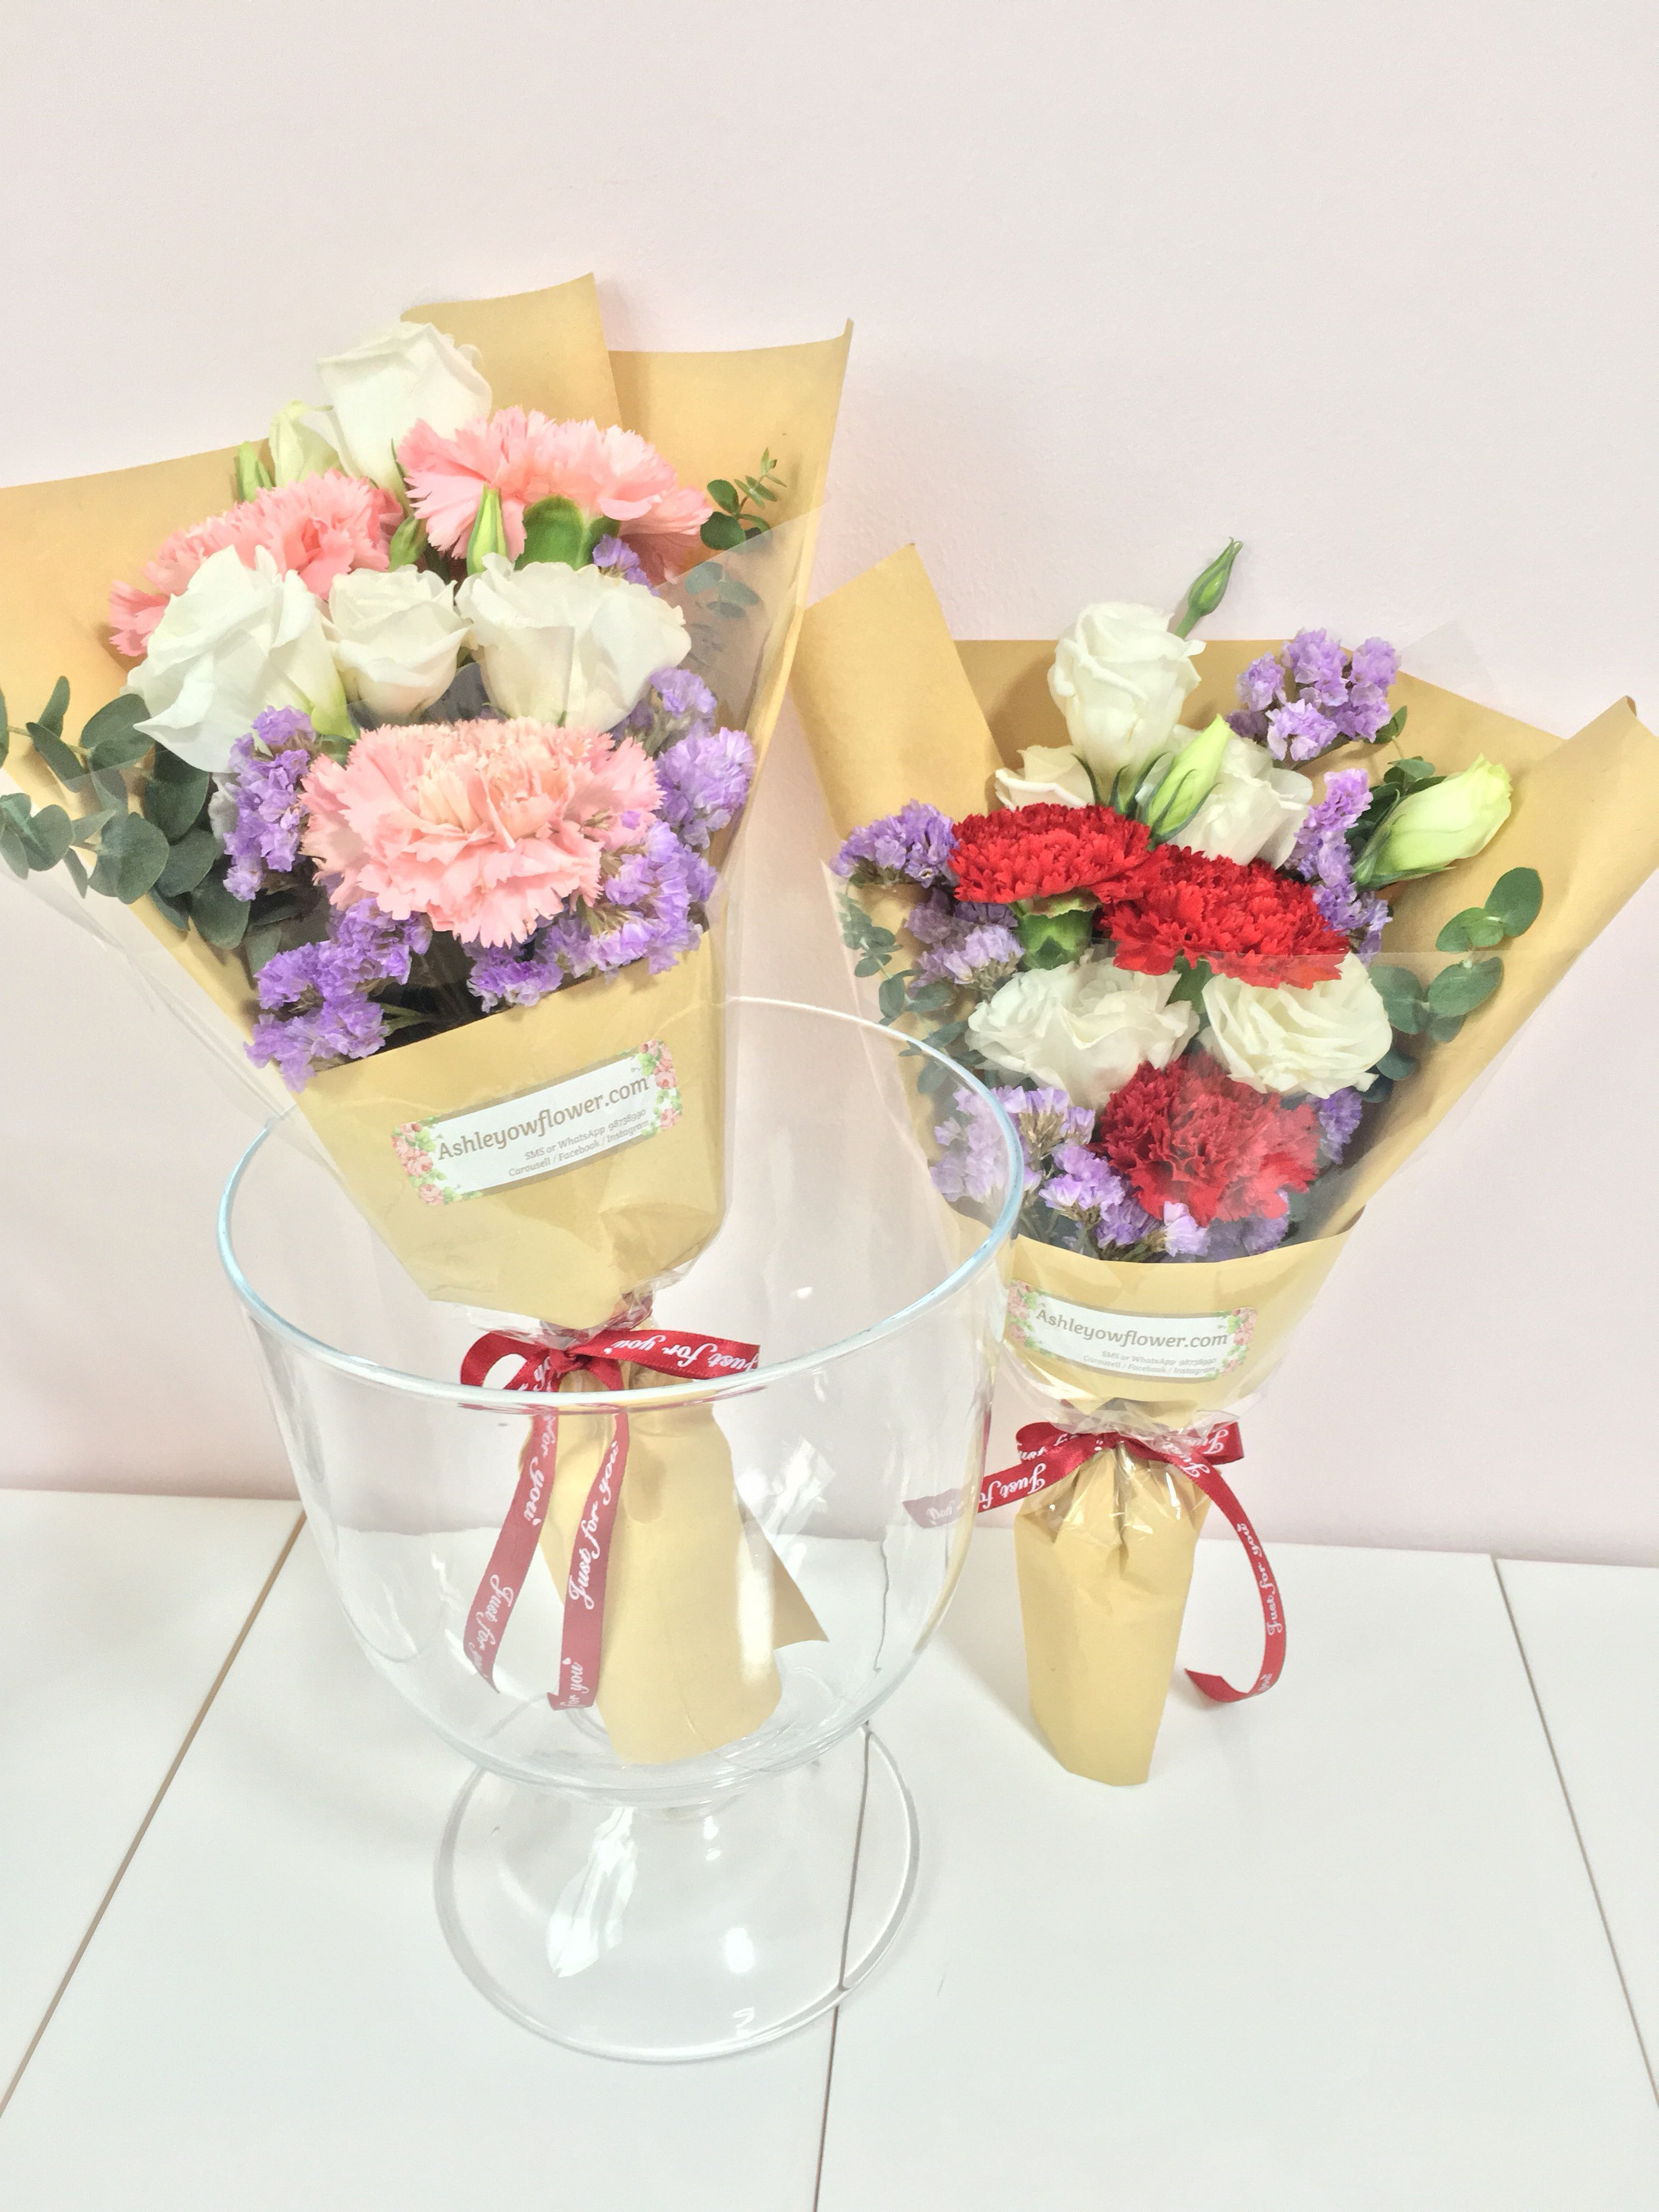 Happy Mothers Day Flower Flower Bouquet Gardening On Carousell